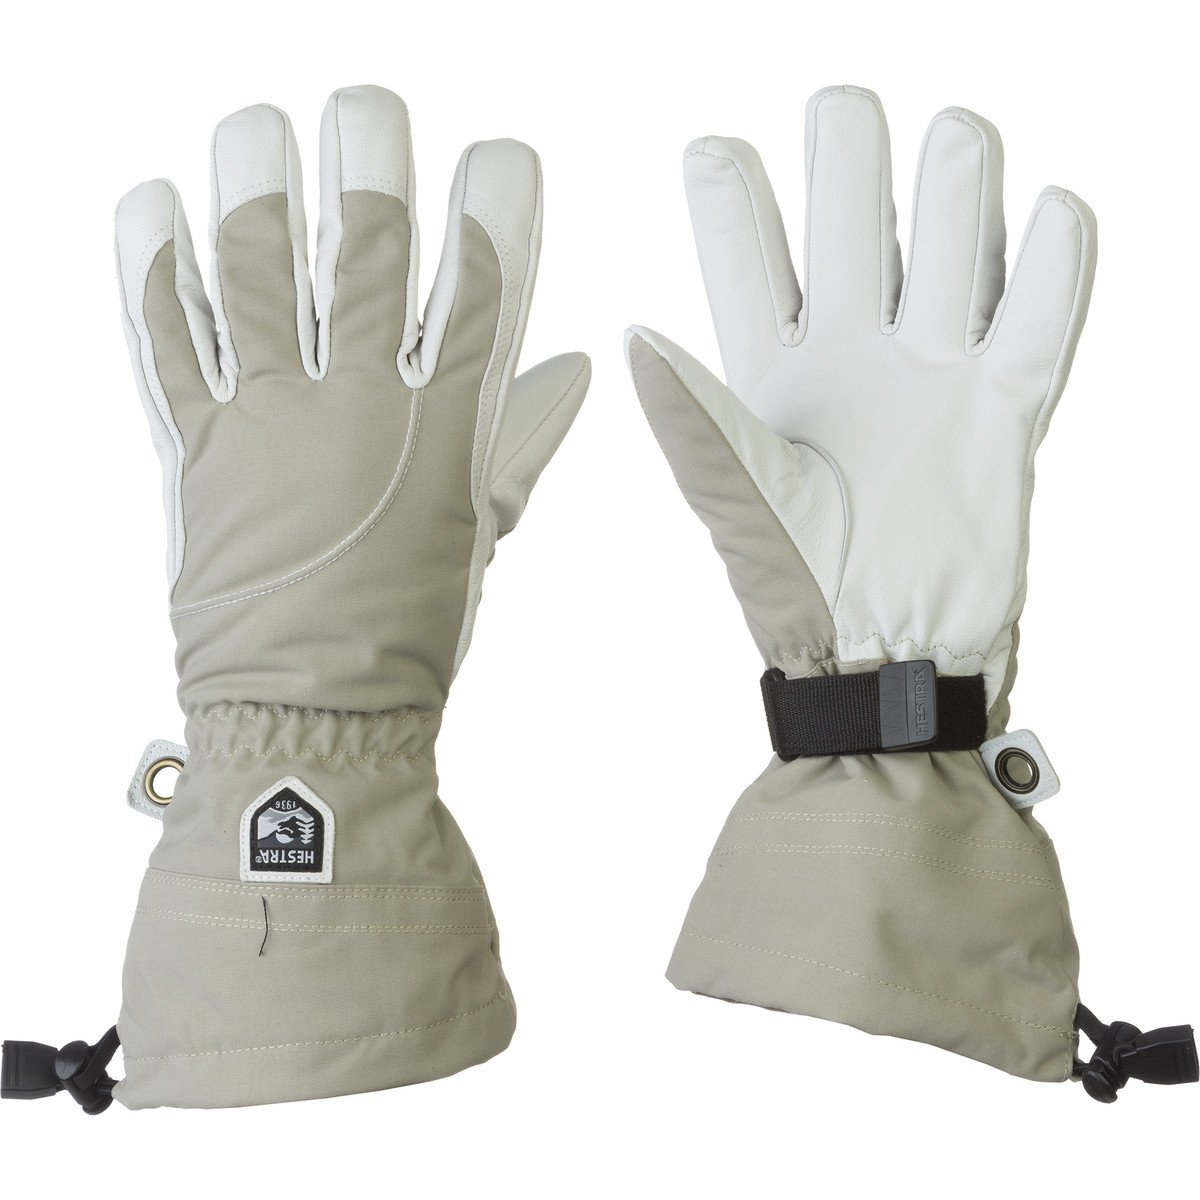 Hestra Women's Heli Gloves, Beige, Size 9 by Hestra